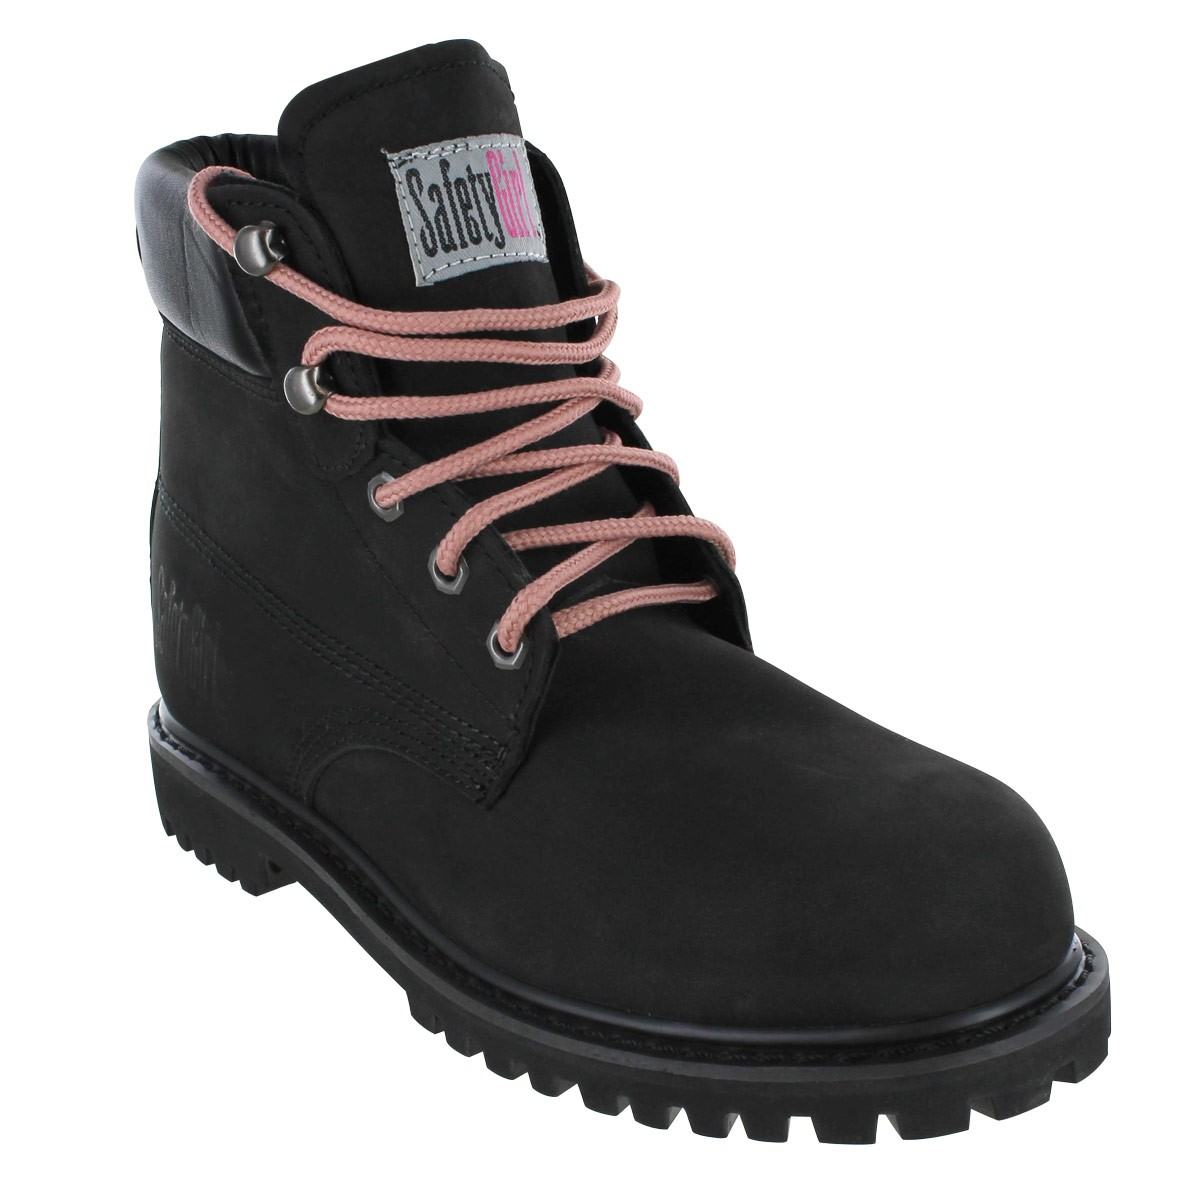 Safety Girl II Steel Toe Waterproof Women's Work Boots - Black - 10.5M